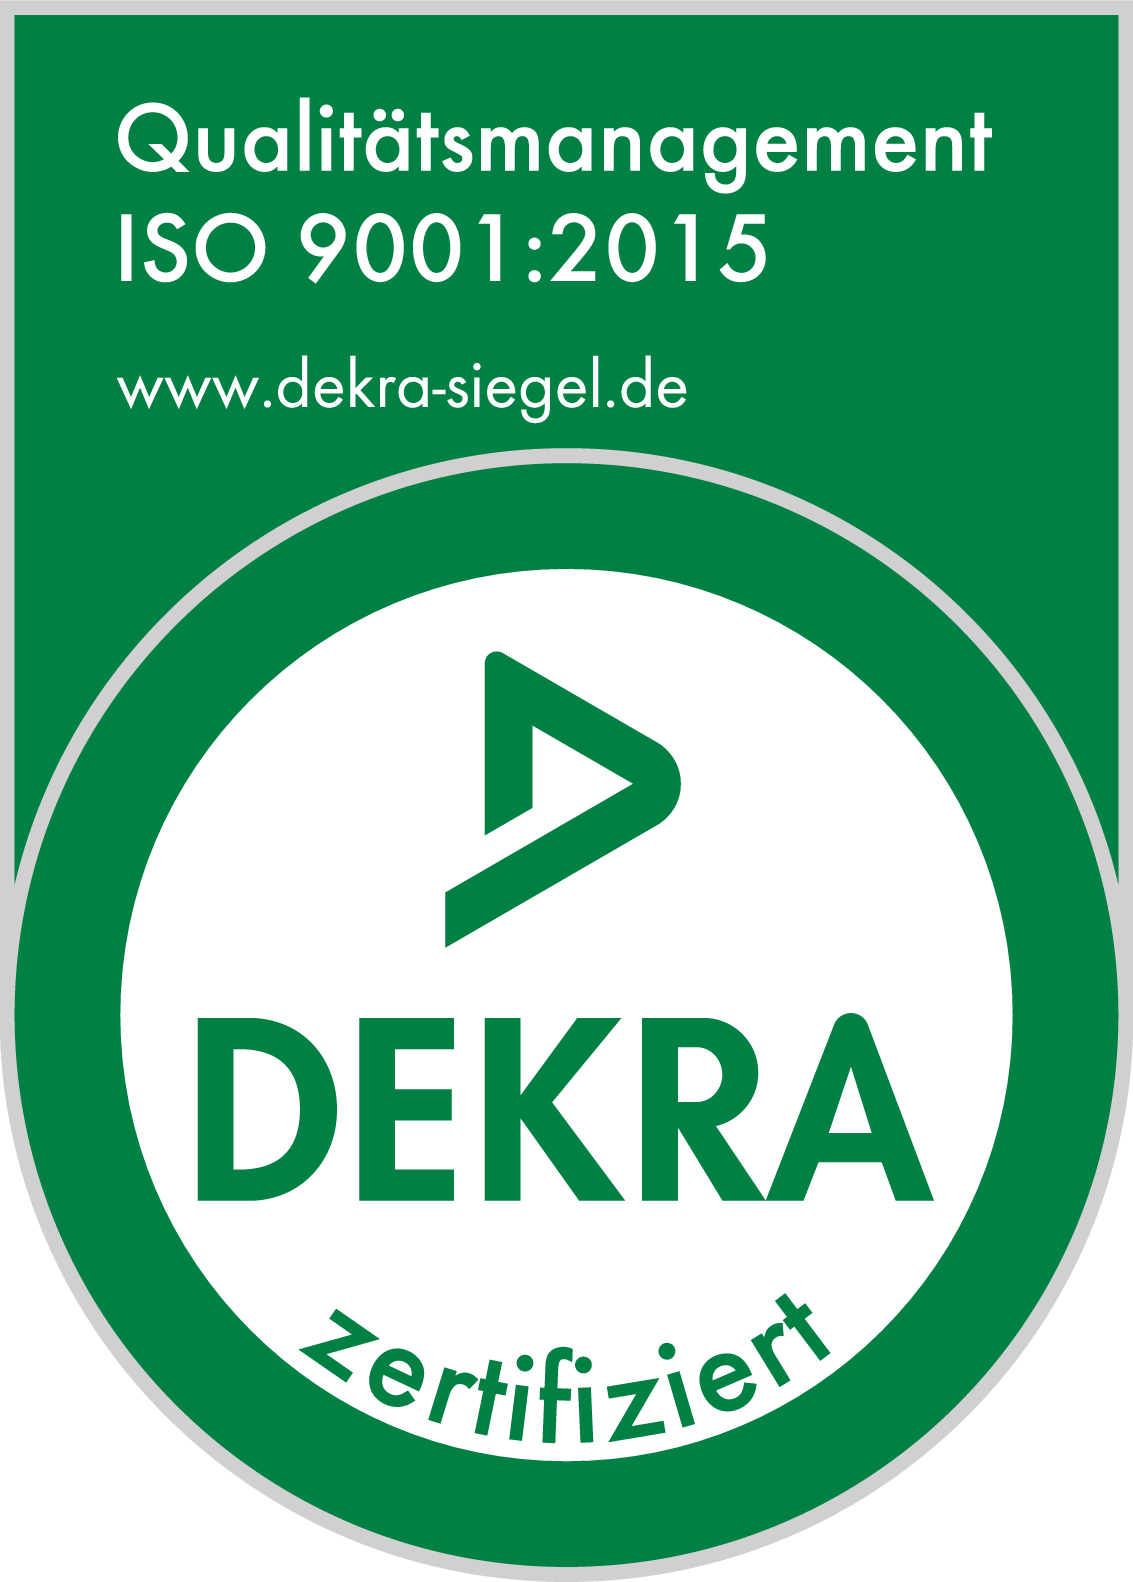 Qualitätsmanagement DEKRA Siegel ISO 9001:2015